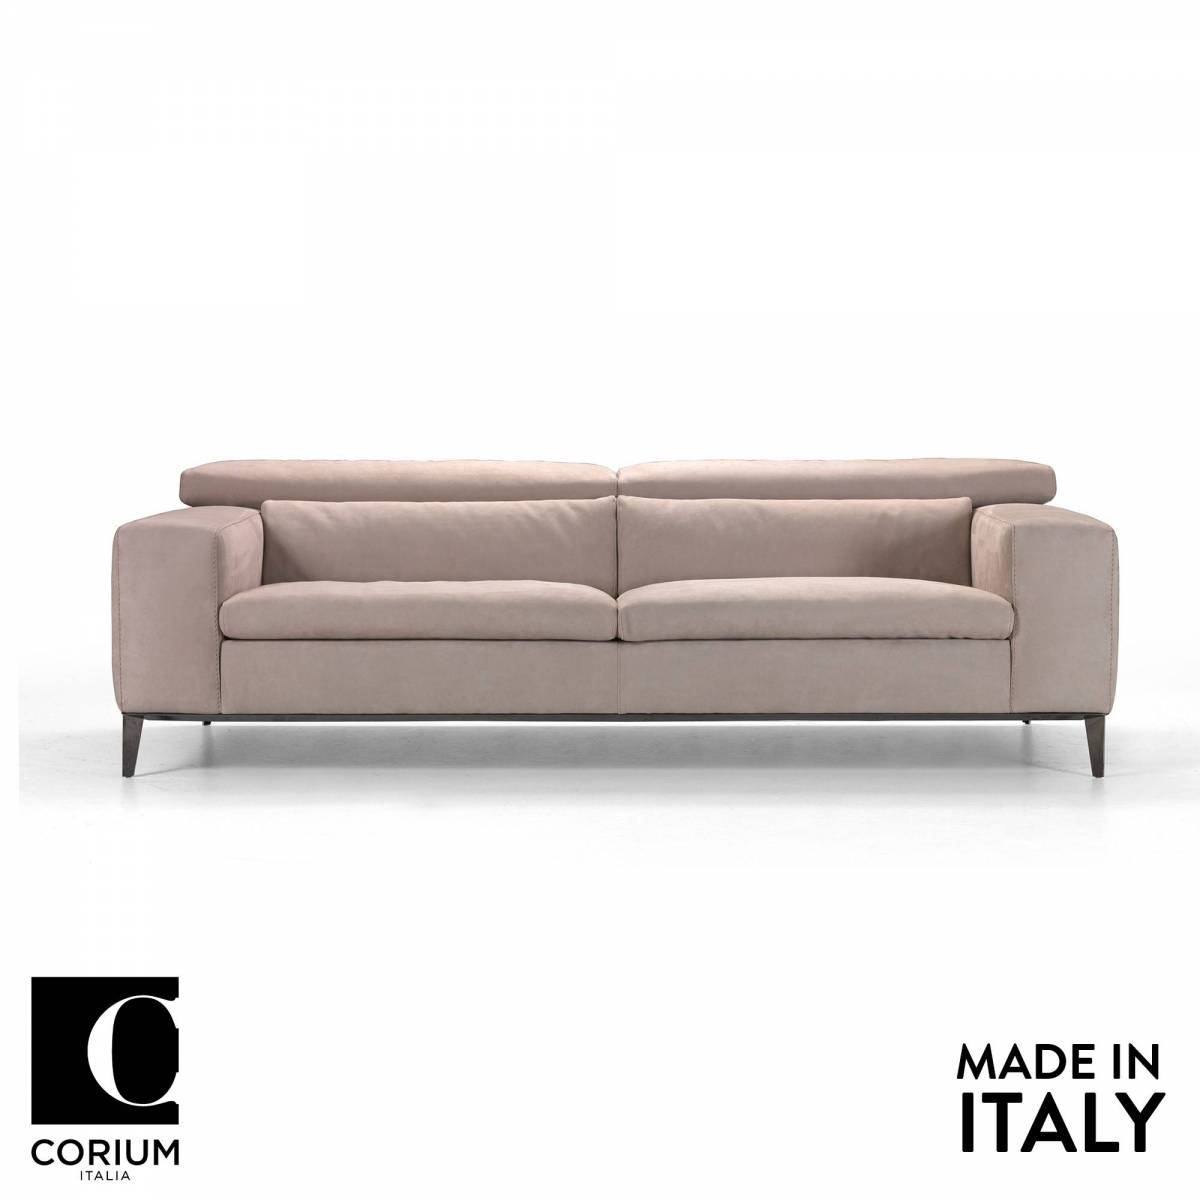 Best Leather Sofas In Singapore: Losanna Italian Leather Sofa By Corium Italia